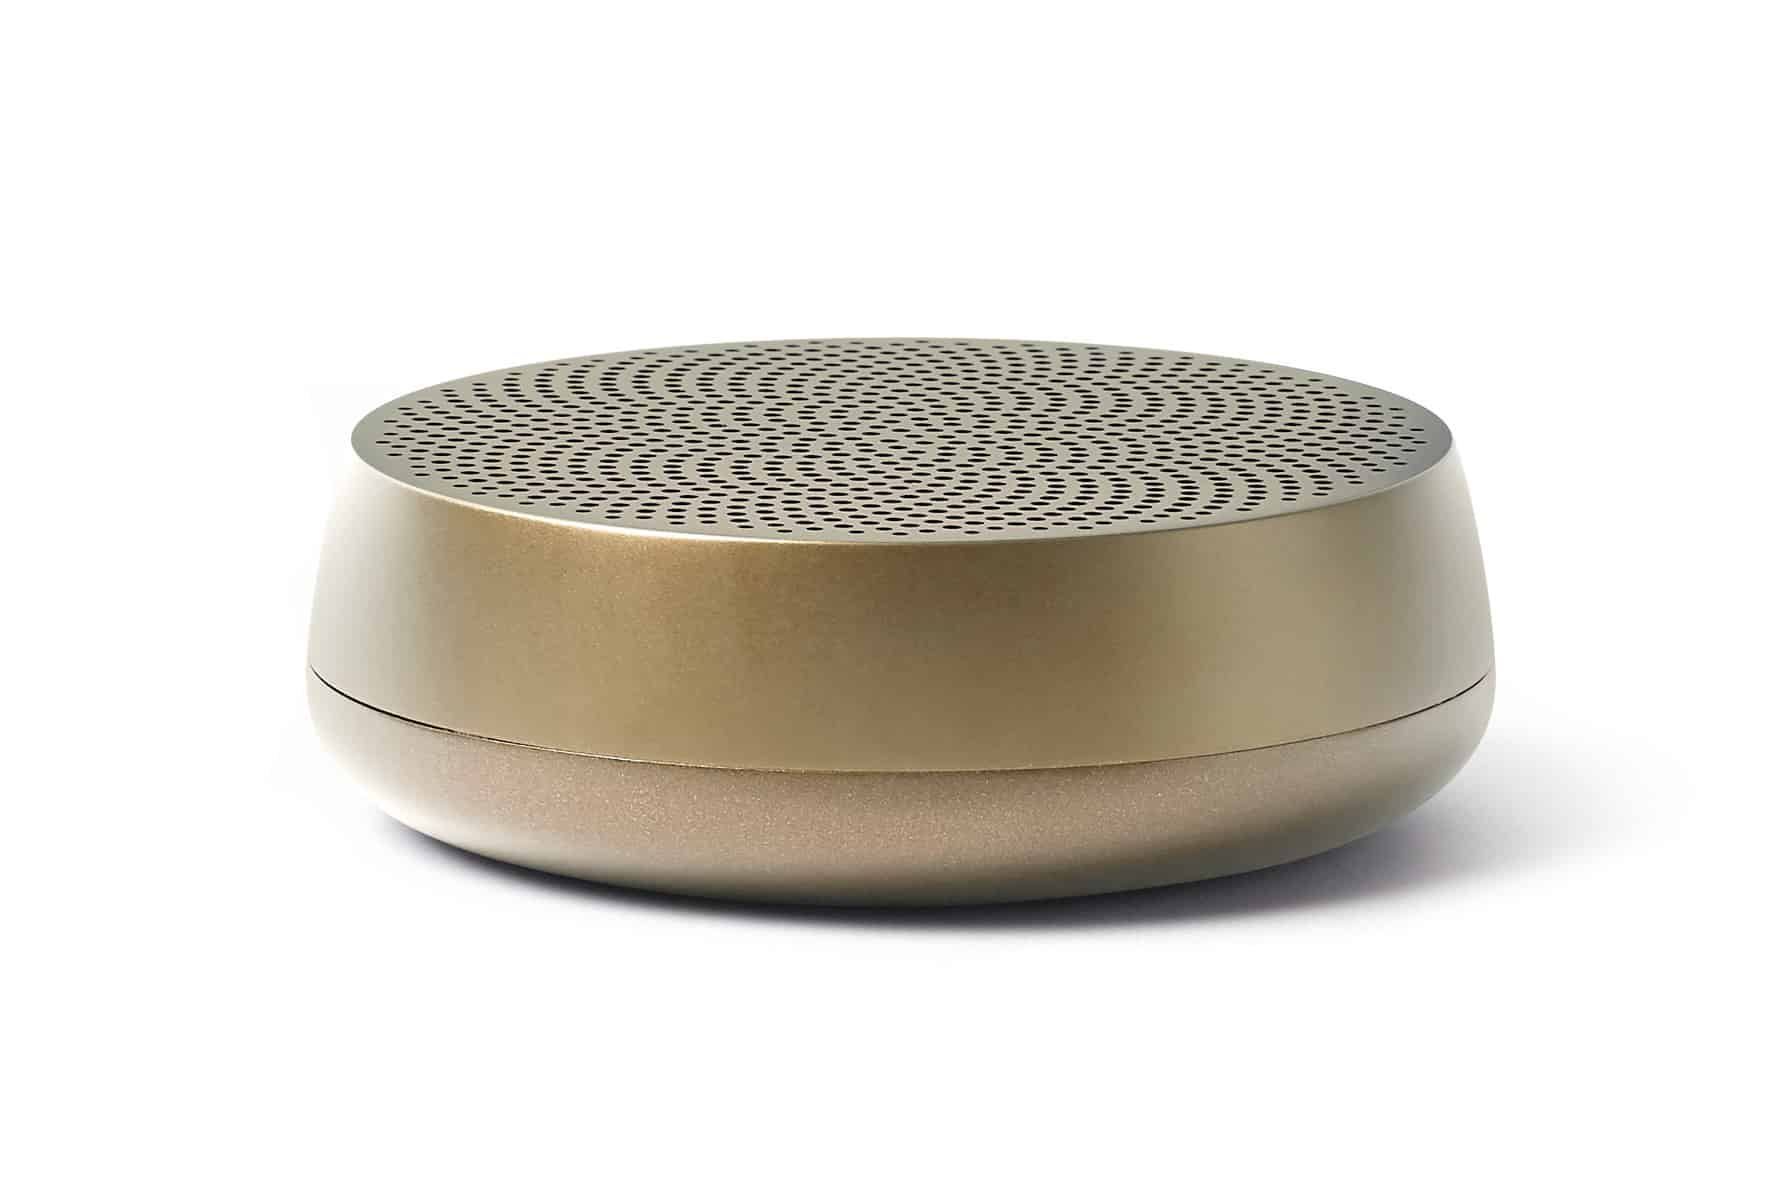 Lexon – MINO L Speaker Bluetooth ricaricabile. Colore Oro – LA121MD